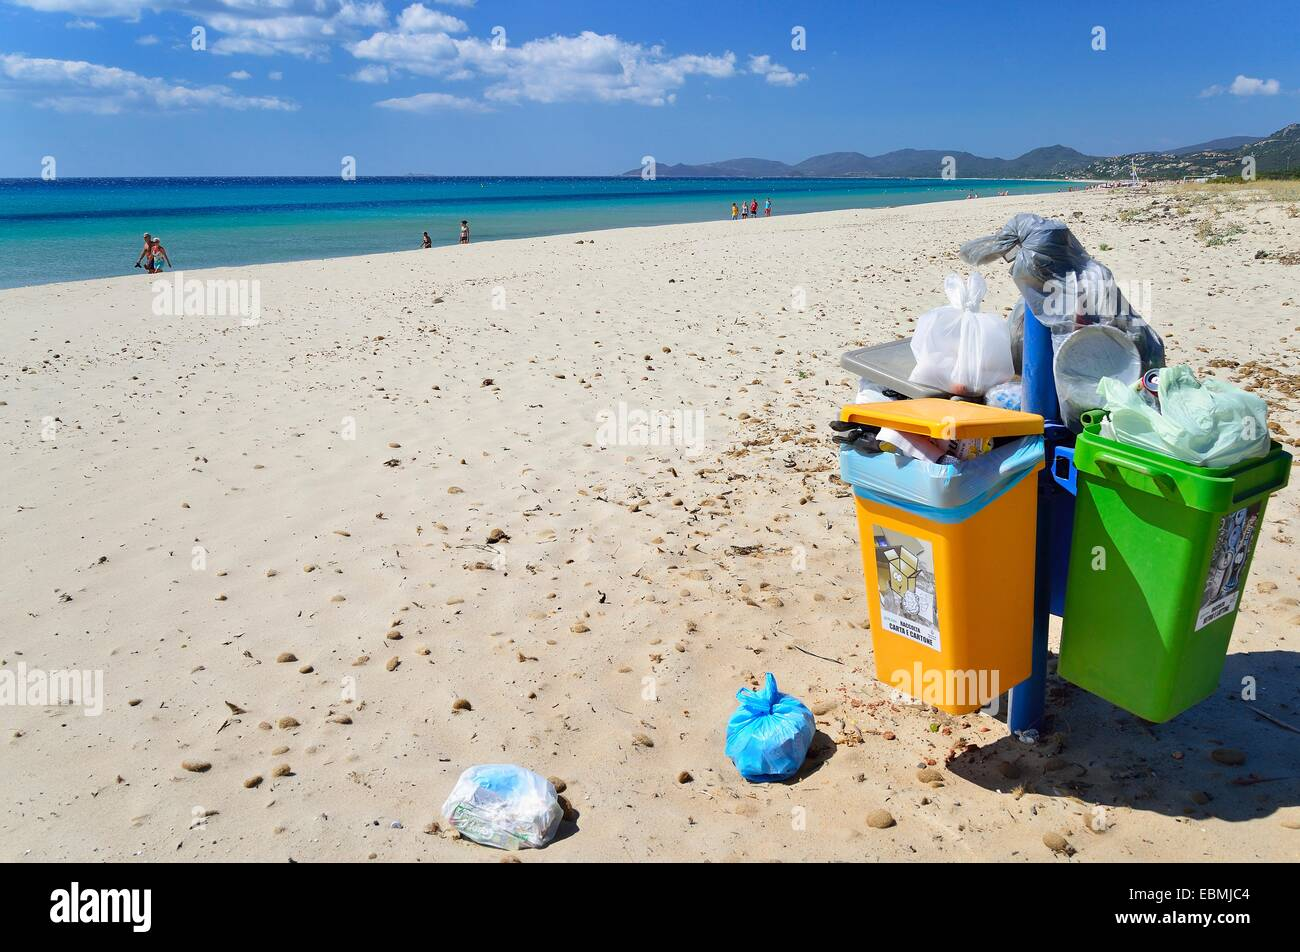 Overflowing trash cans on the beach, Costa Rei, Cagliari, Sardinia, Italy Province - Stock Image